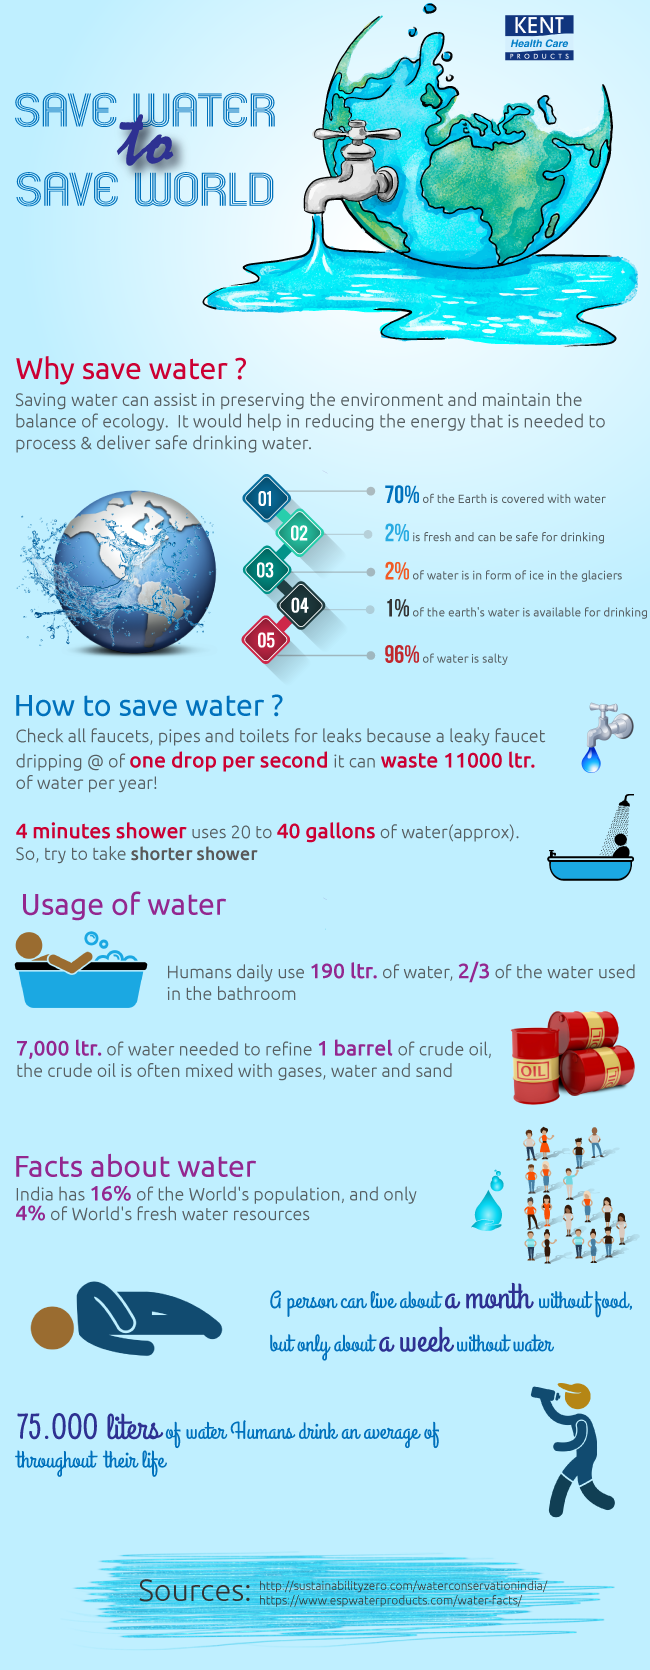 Save Water to Save World